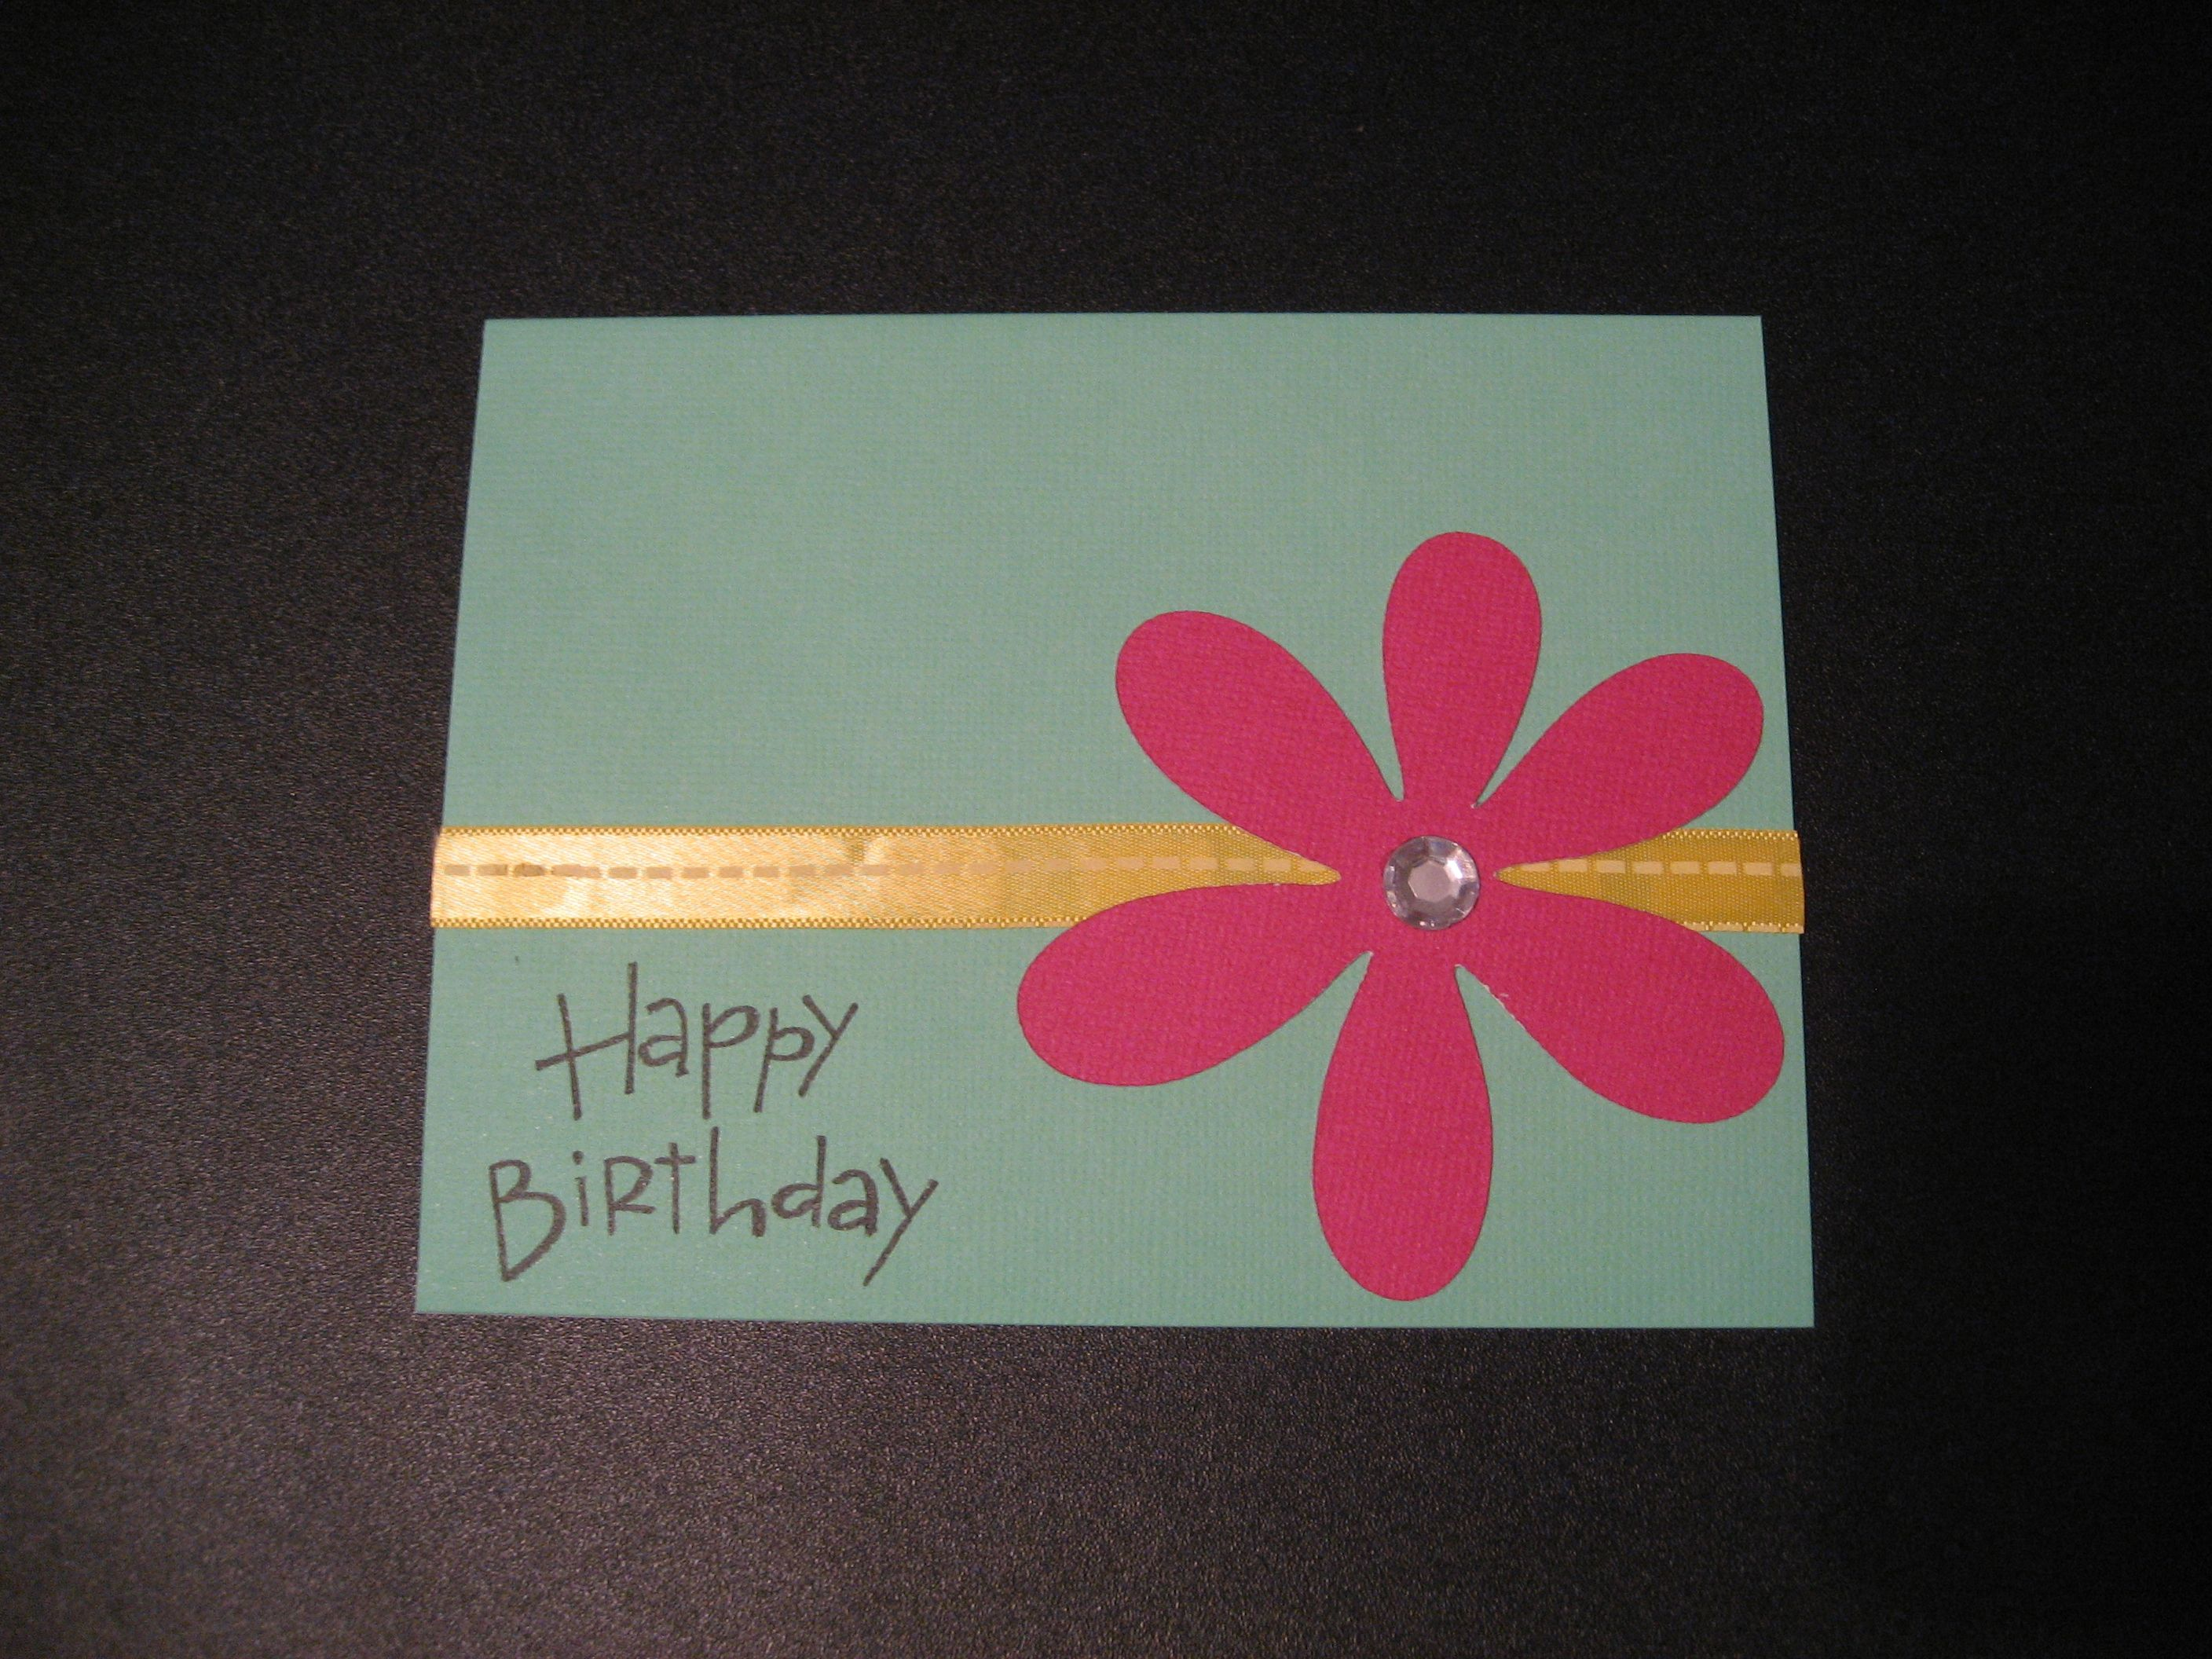 17 Best images about Card ideas – Pictures of Homemade Birthday Cards